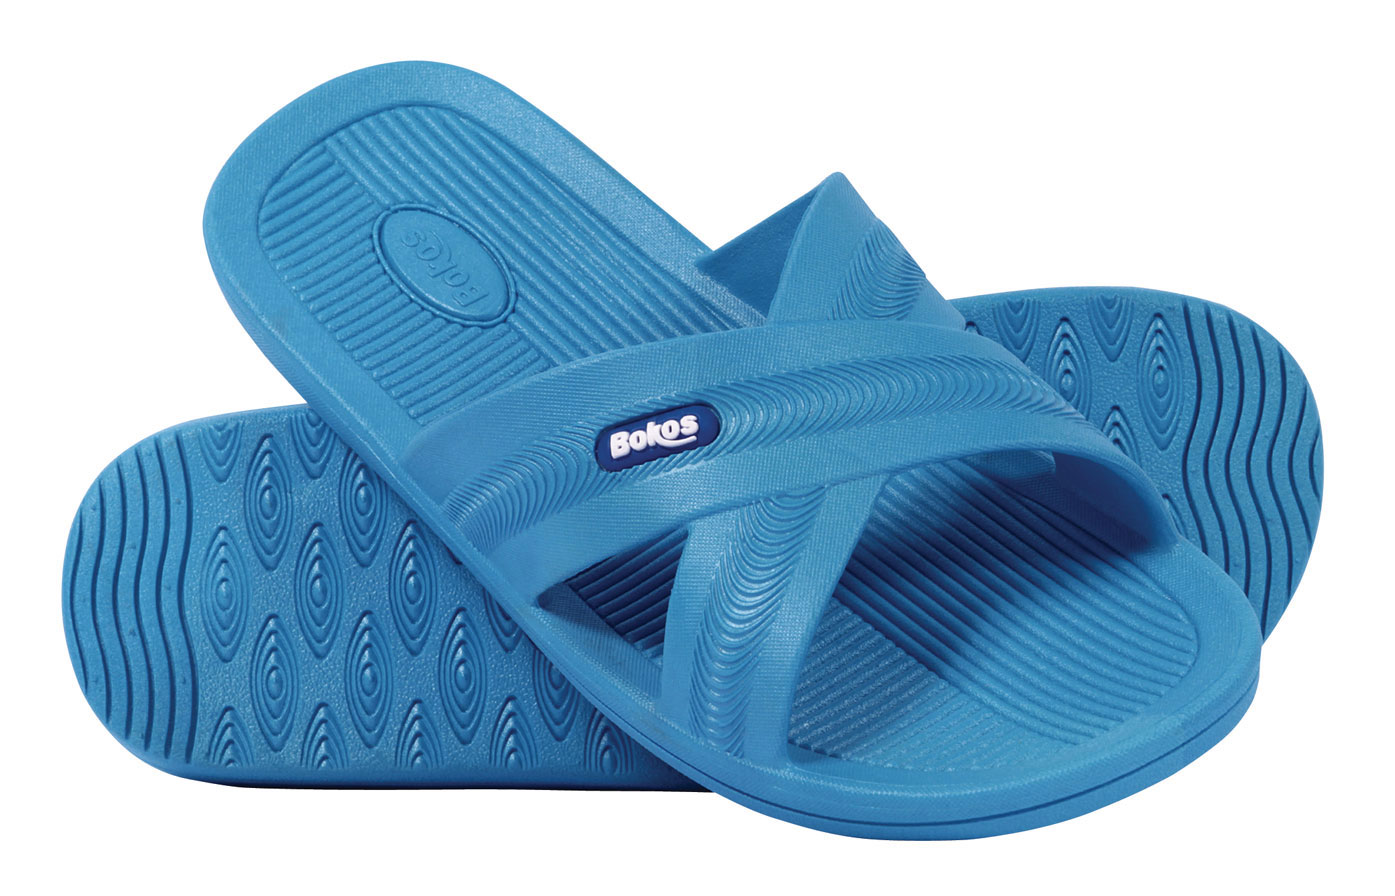 Bokos Women's Sandals Flip Flops Stylish & Comfortable Carolina Blue by Bokos